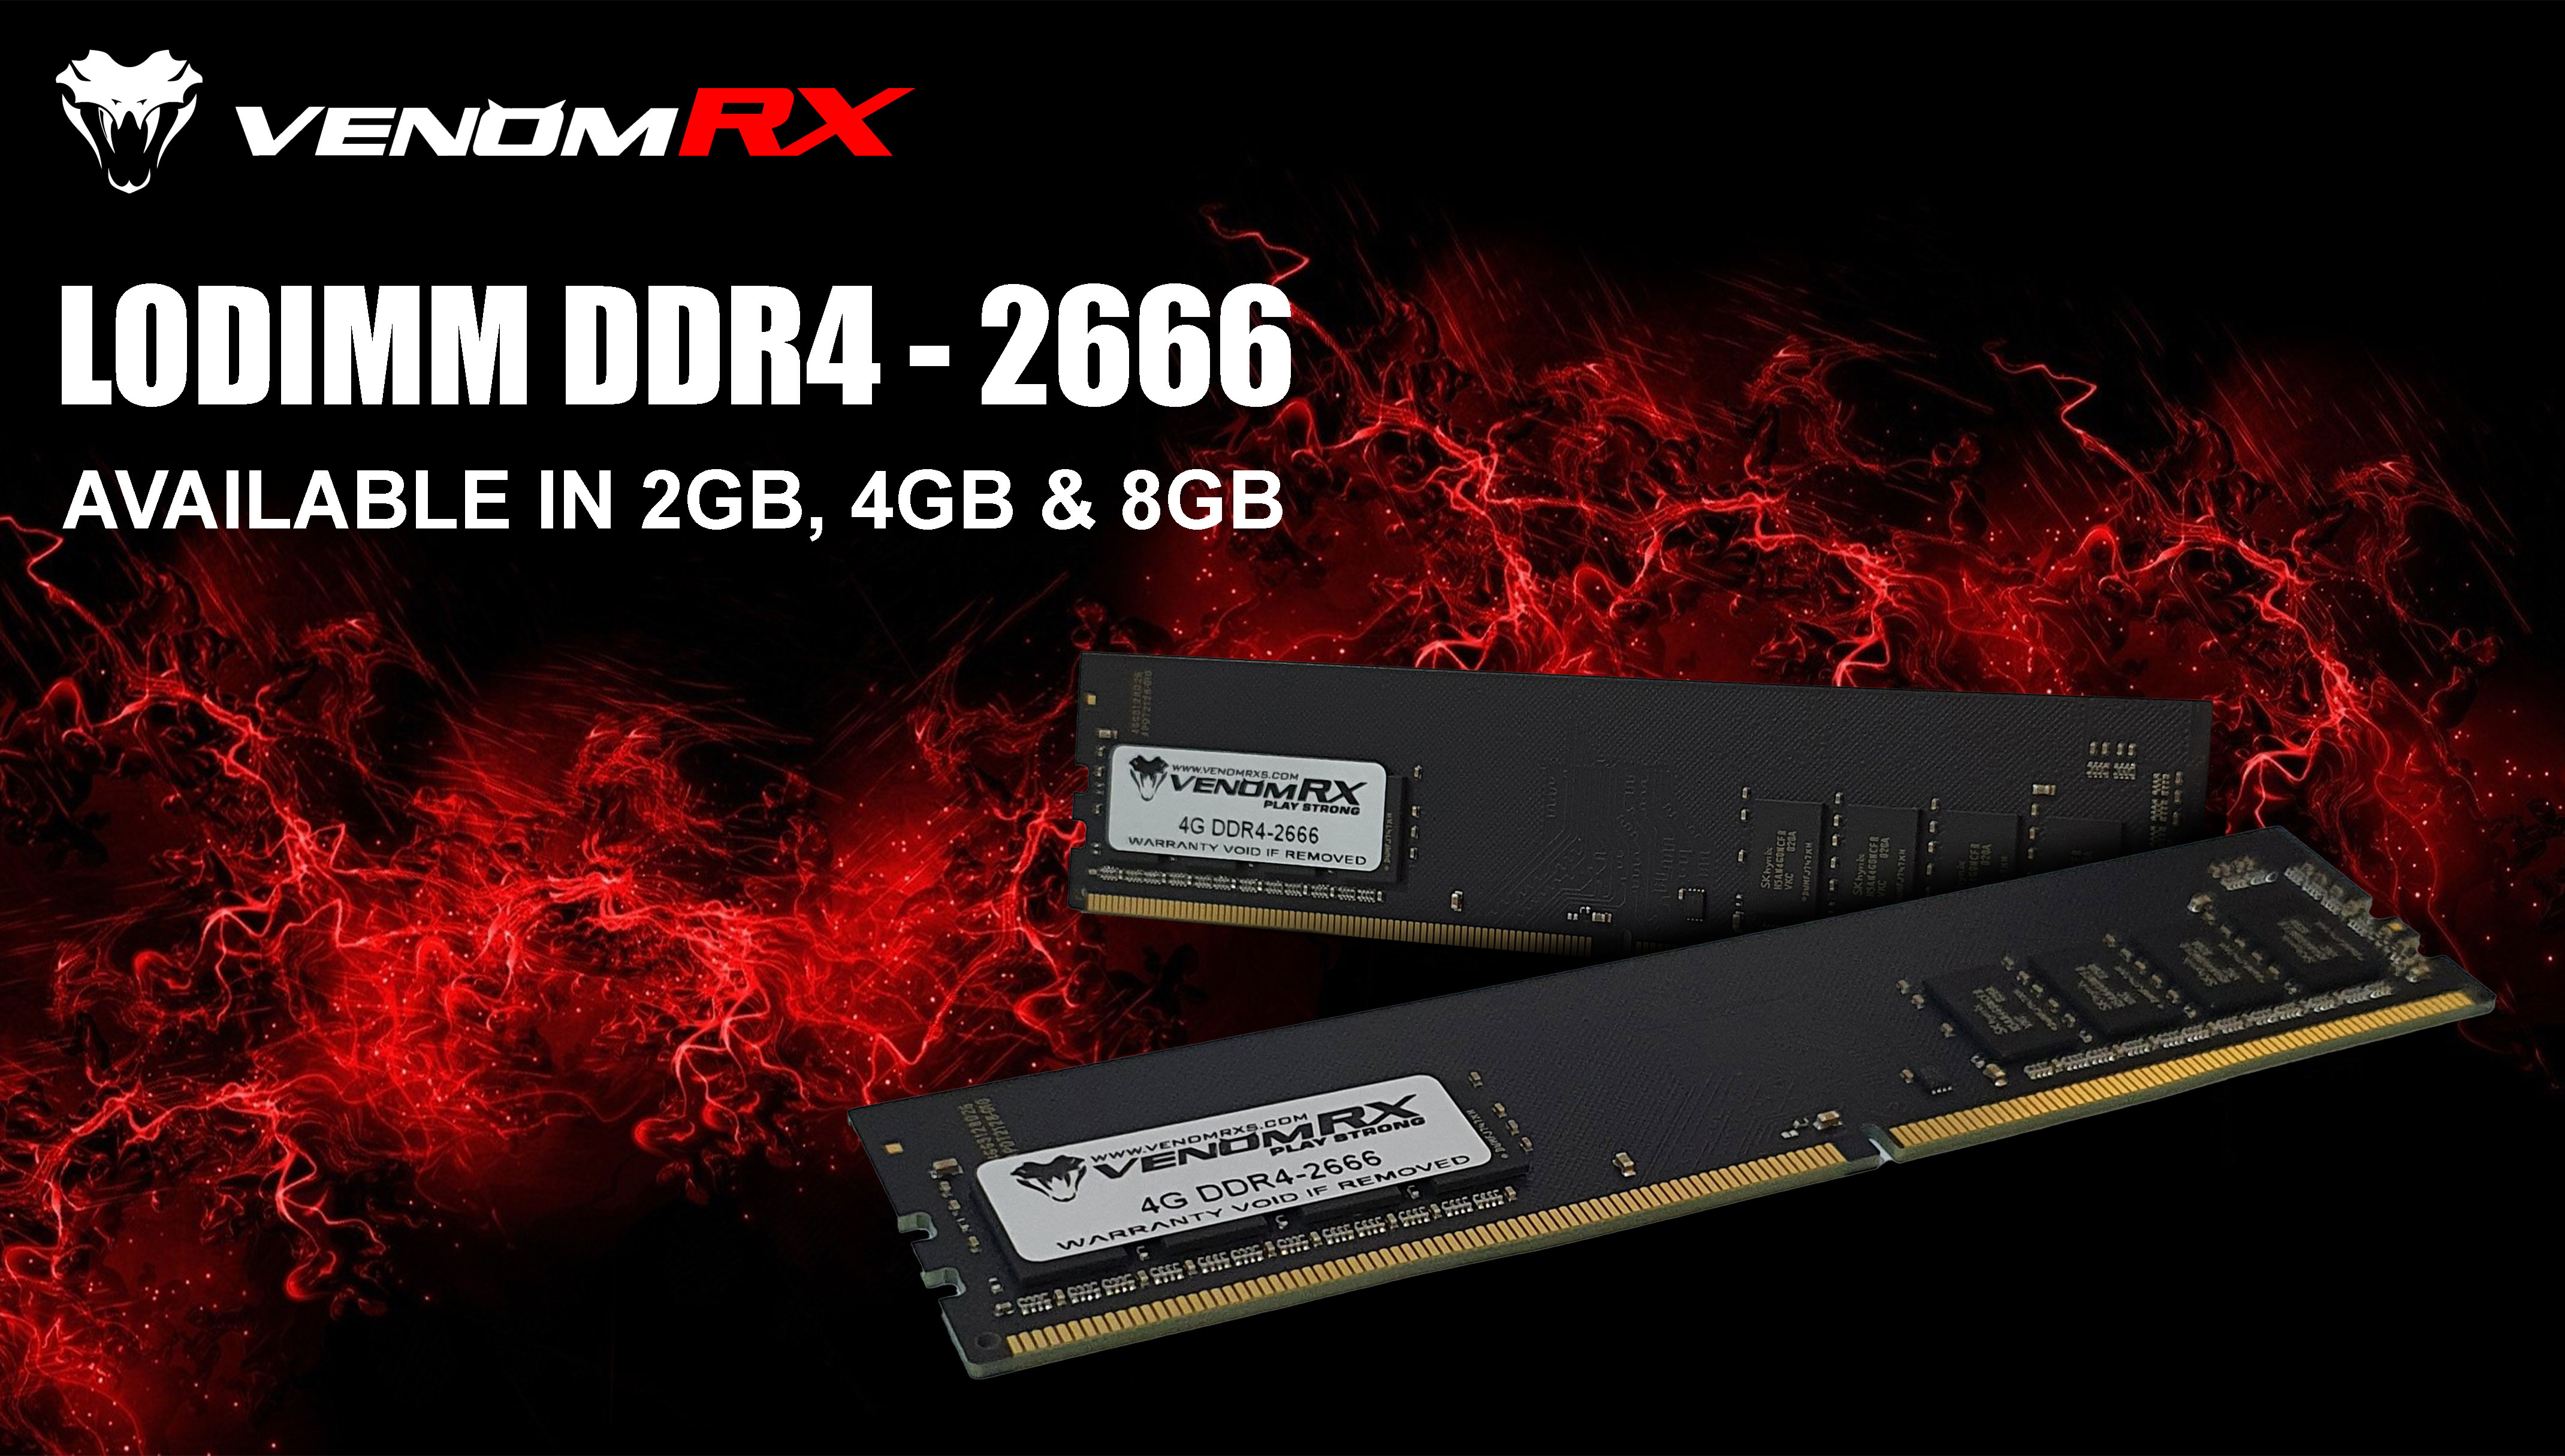 LODIMM-DDR4-1-PAGE